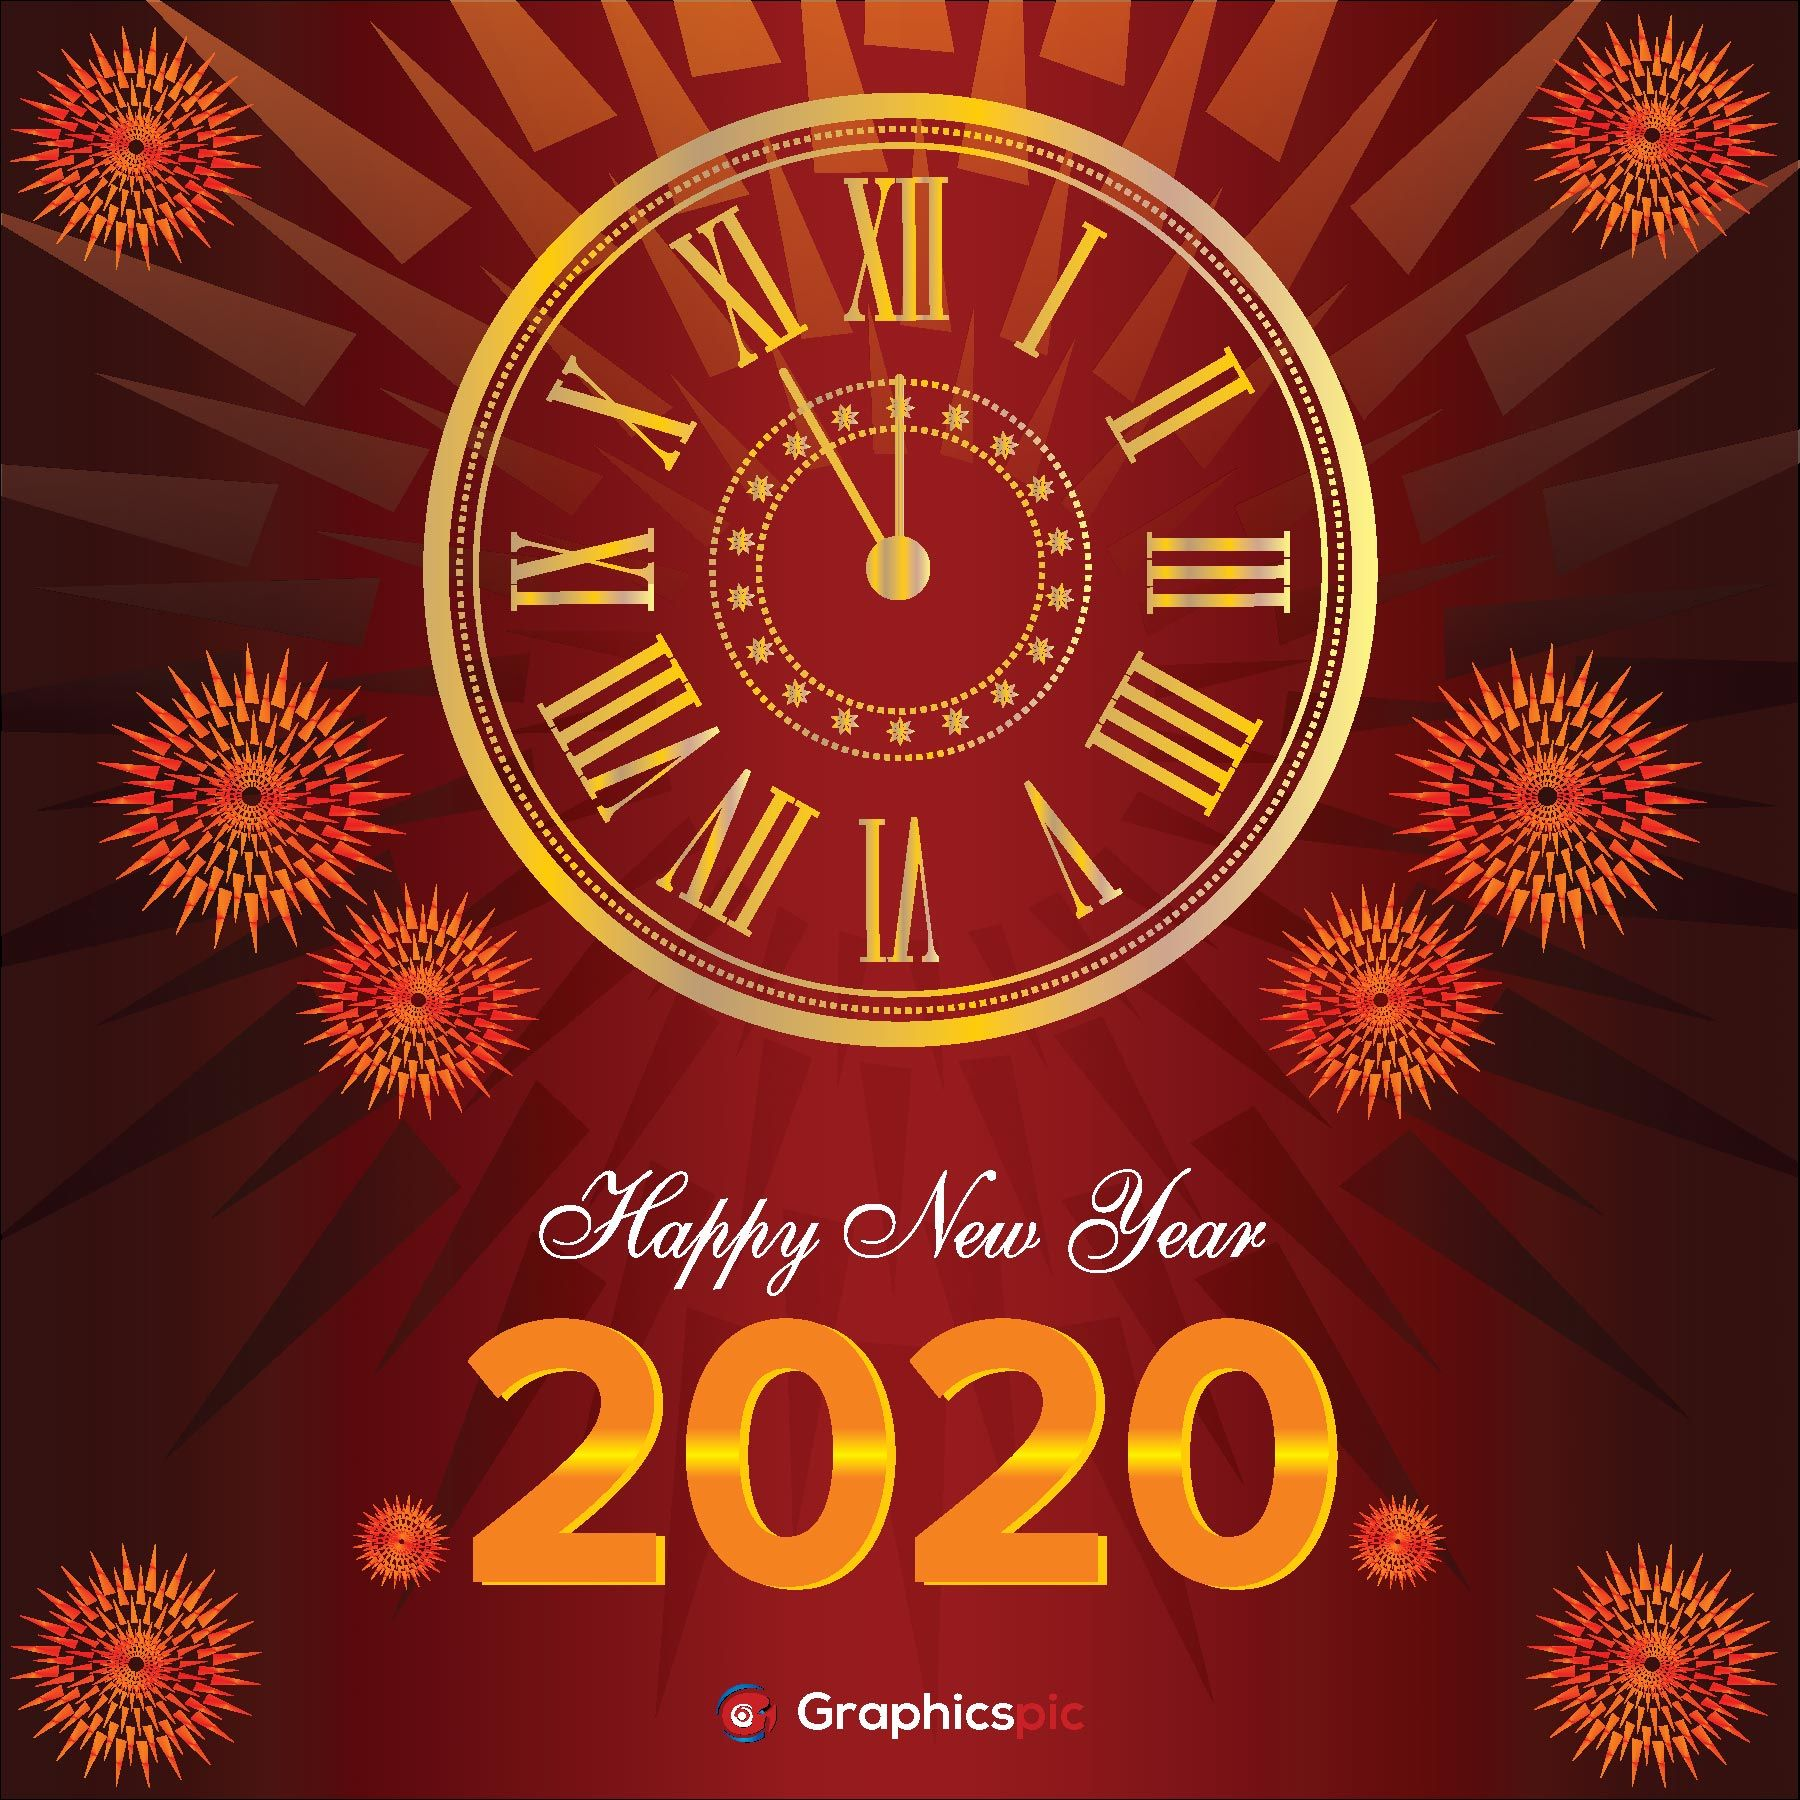 Happy New Year 2020 Background With Clock Free Vector Graphics Pic Happy New Year 2020 Vector Free Free Vector Graphics